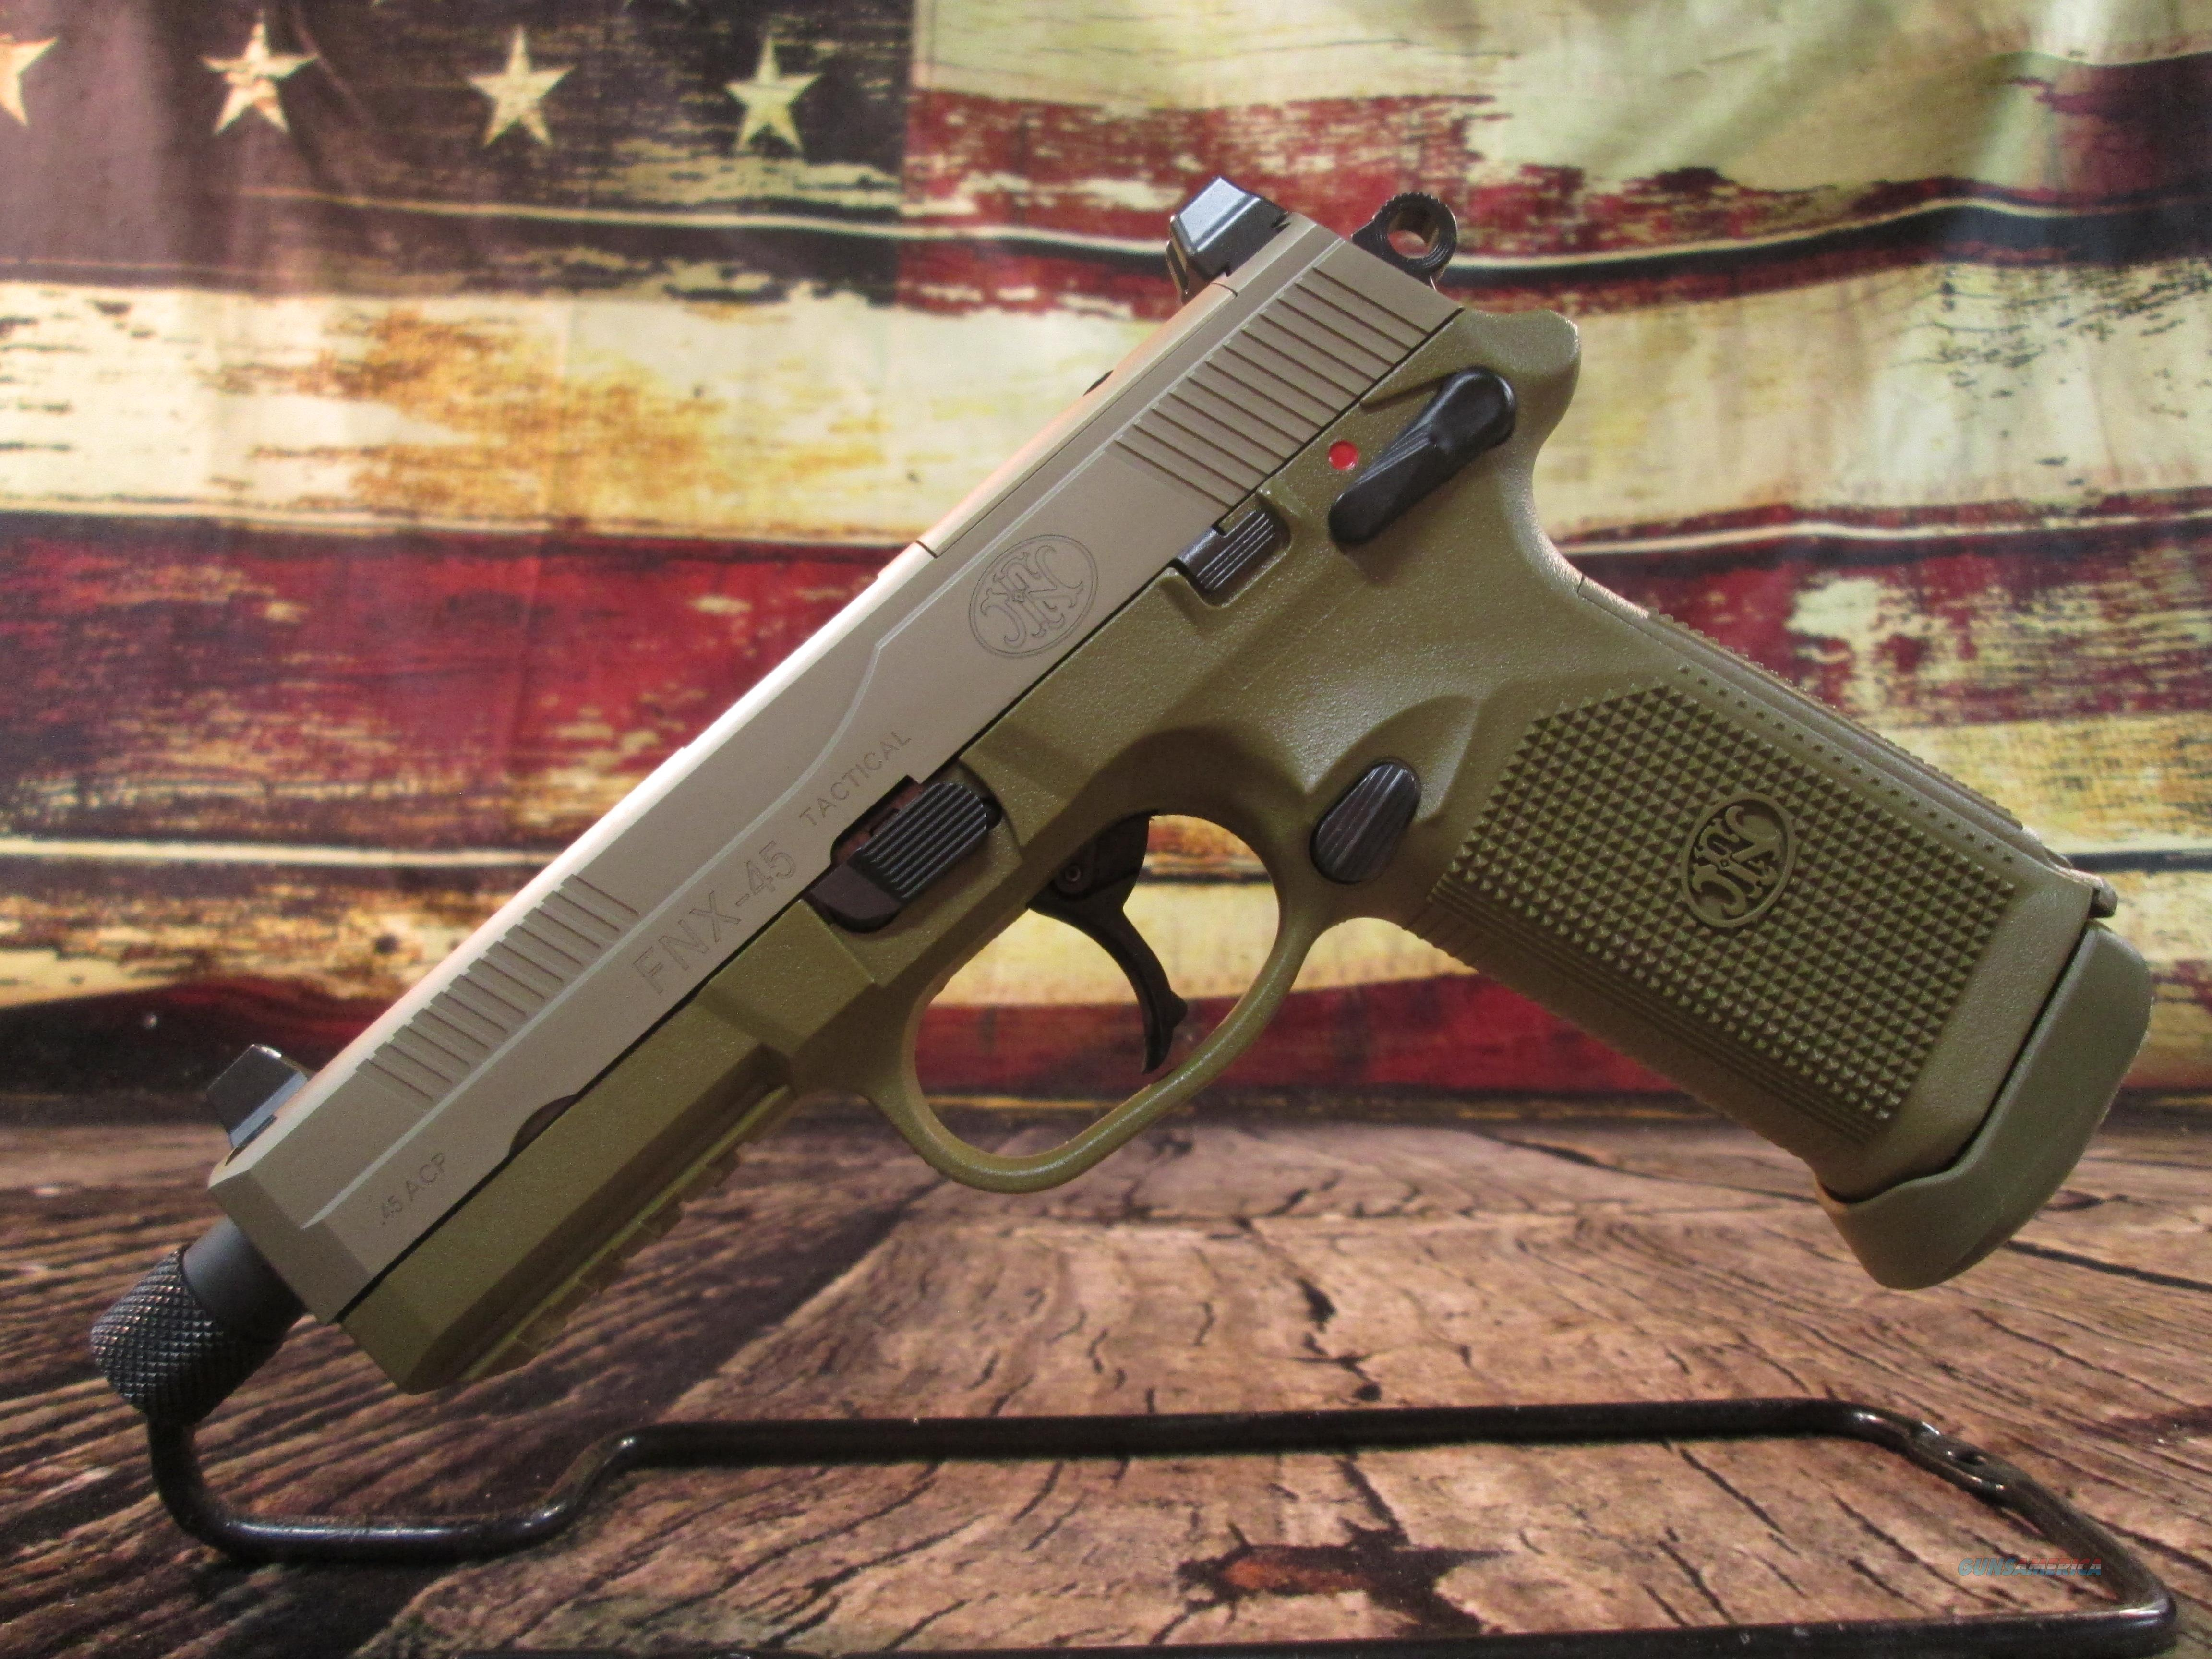 FN FNX-45 TACTICAL FLAT DARK EARTH USED (64477)  Guns > Pistols > FNH - Fabrique Nationale (FN) Pistols > FNX